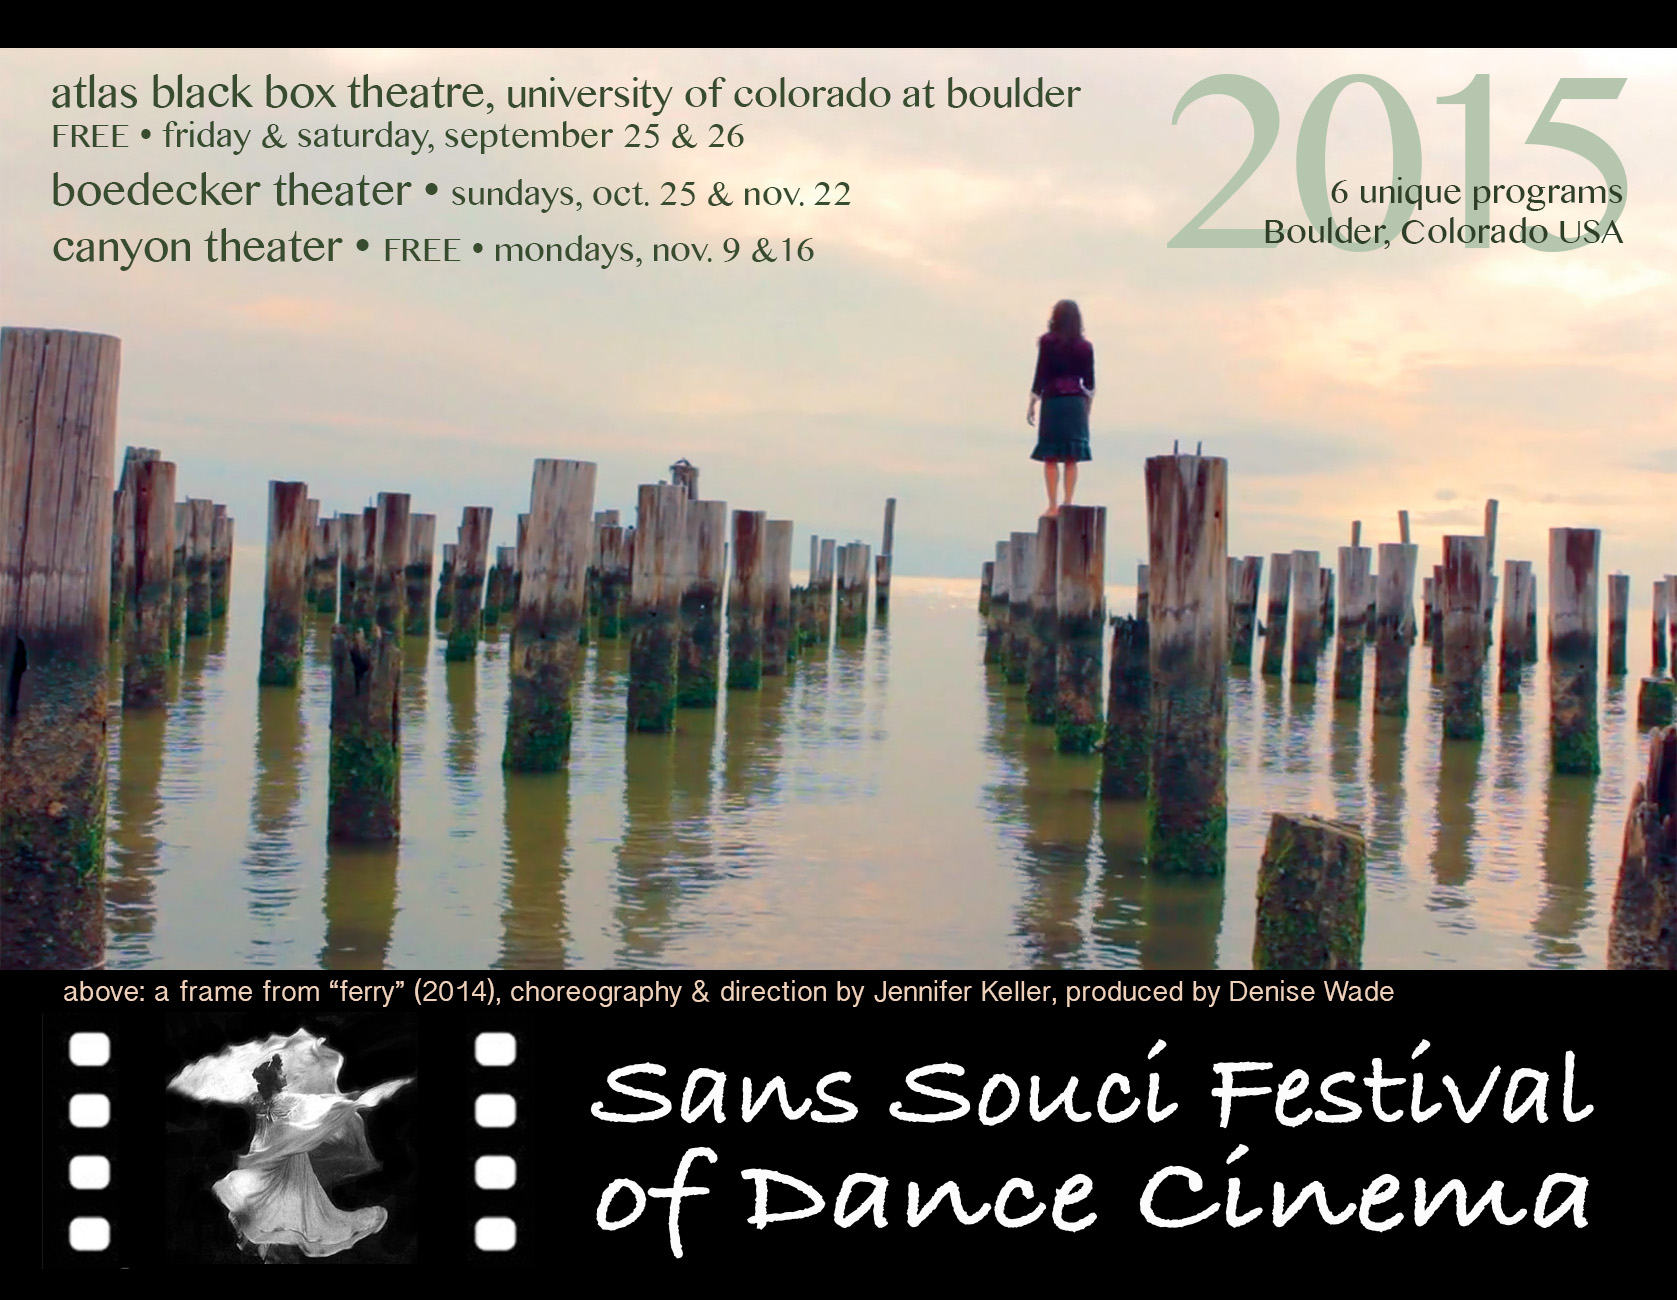 Twelfth Annual Sans Souci Festival of Dance Cinema